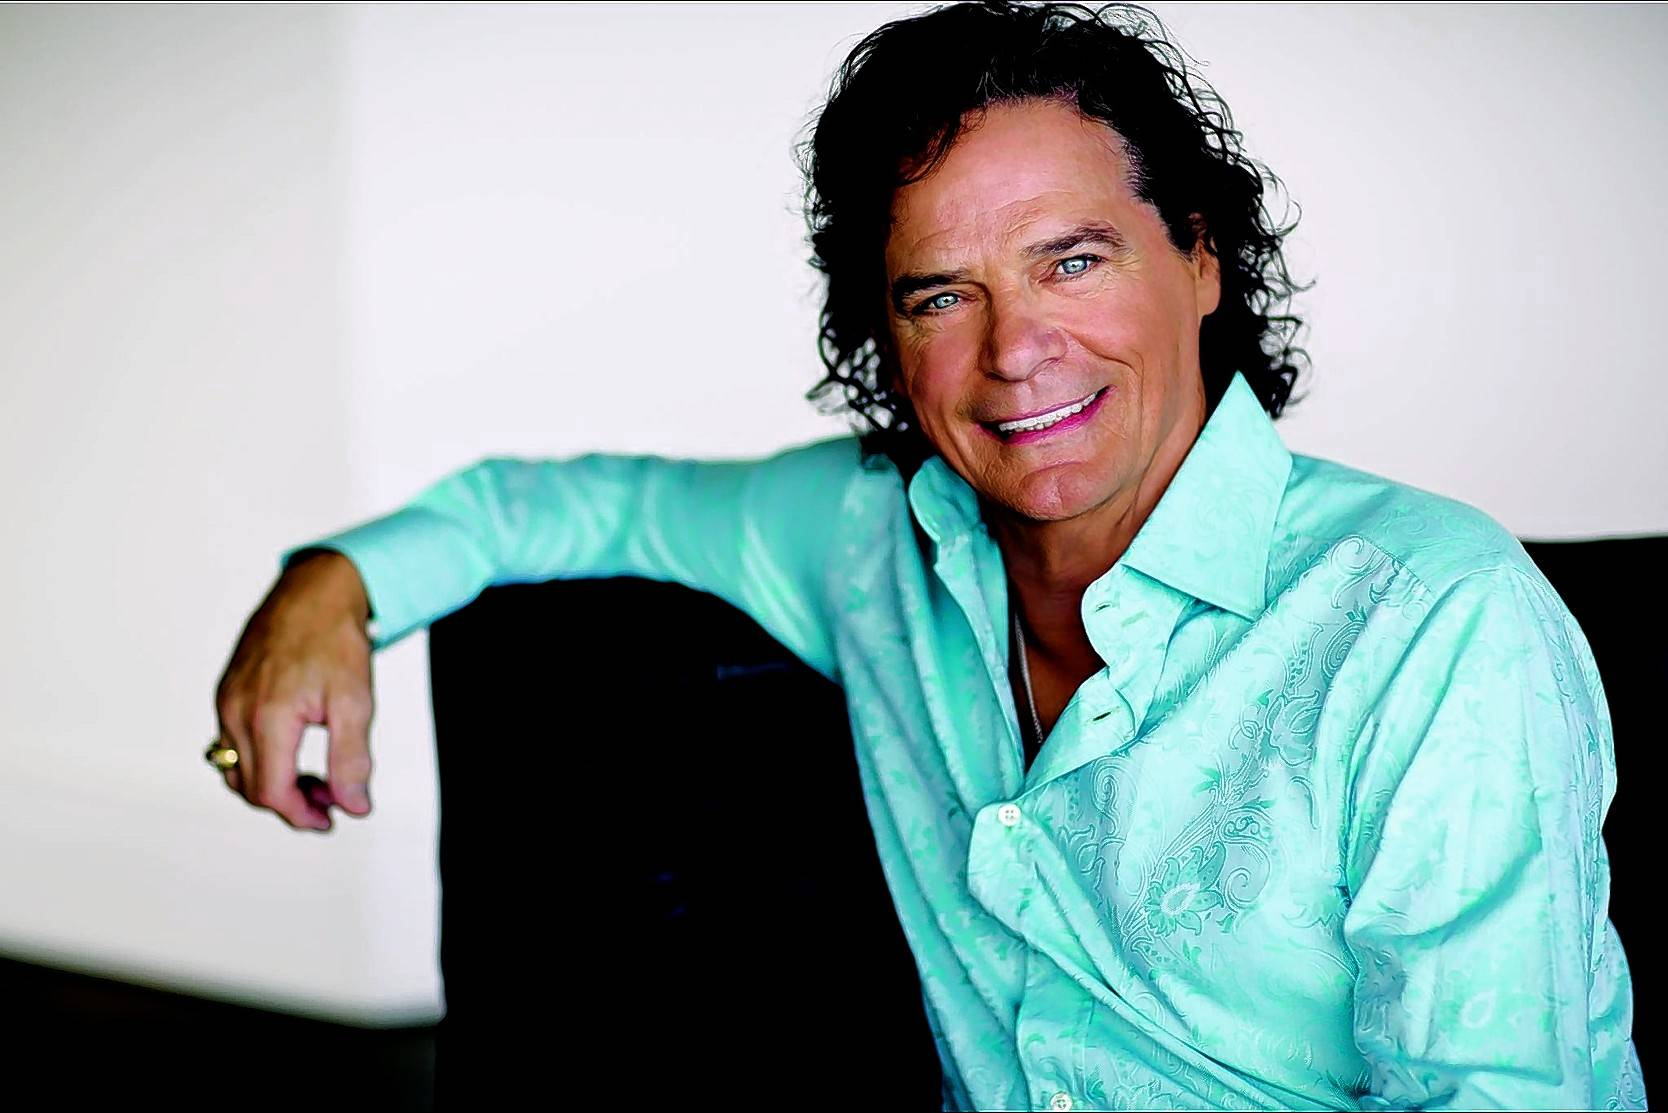 B.J. Thomas recently performed at The Arcada, and he'll return for another show Sept. 17.